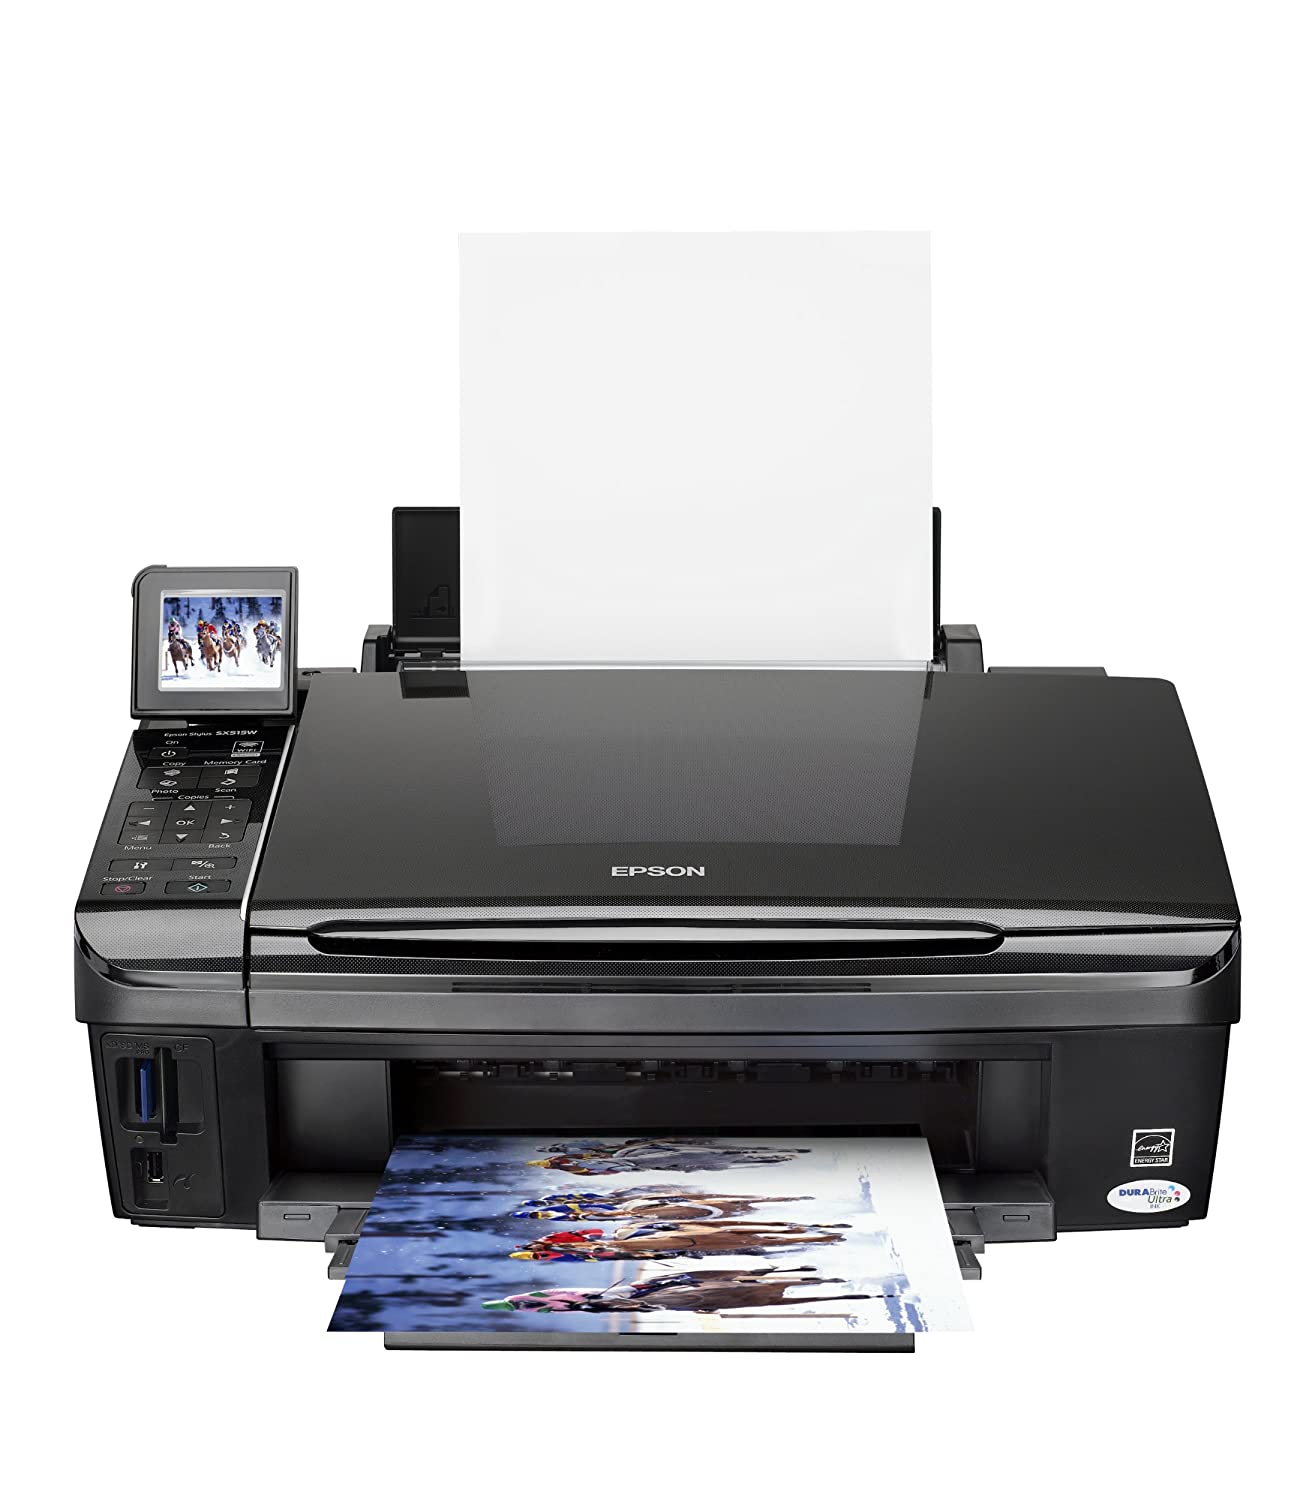 EPSON 515W DRIVER FOR WINDOWS DOWNLOAD